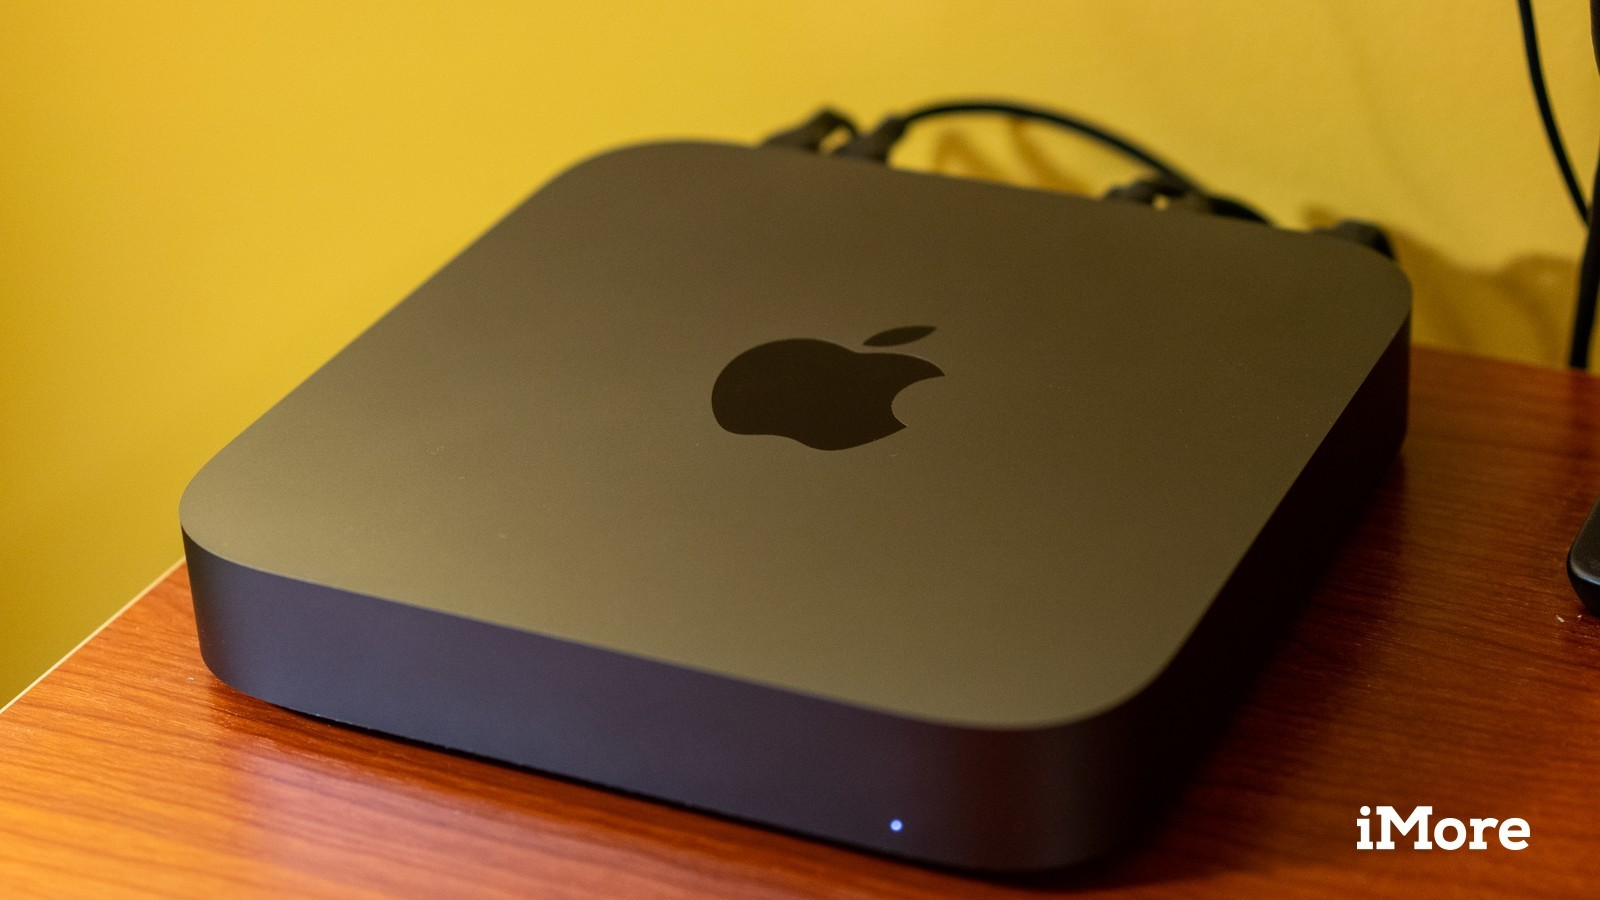 Should you get AppleCare+ for your Mac mini?